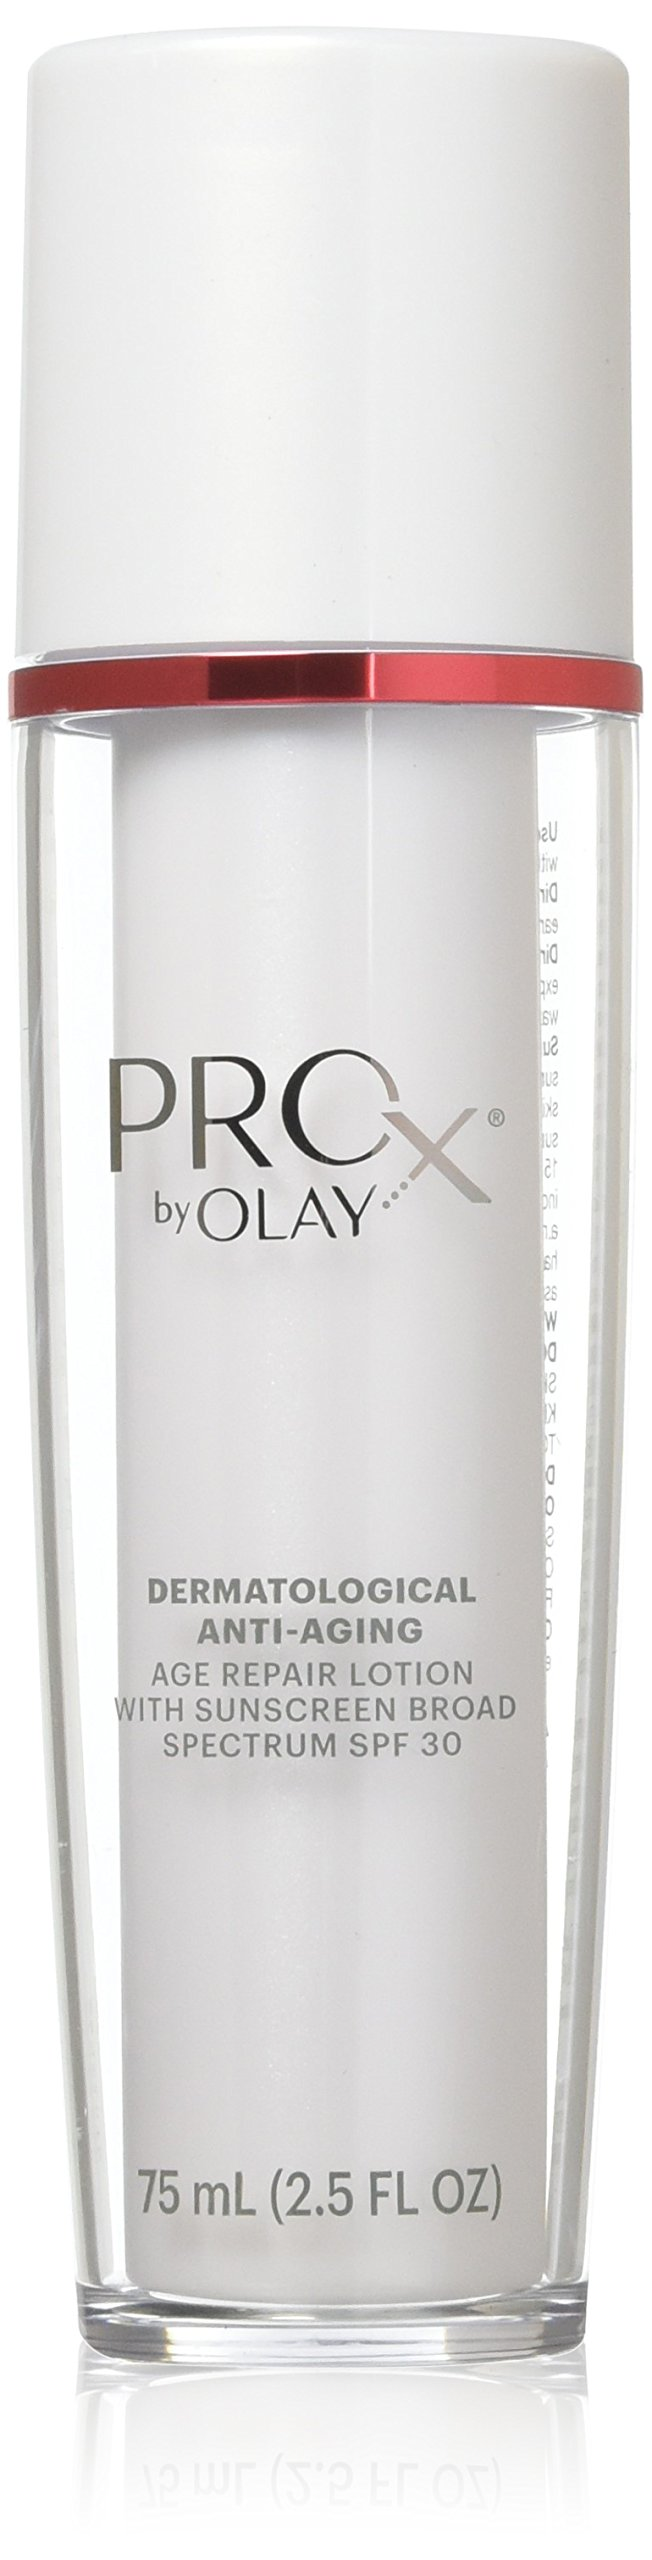 Olay Professional Pro-X Age Repair Lotion with Sunscreen Broad Spectrum SPF 30 2.5 Fl Oz  Packaging may Vary